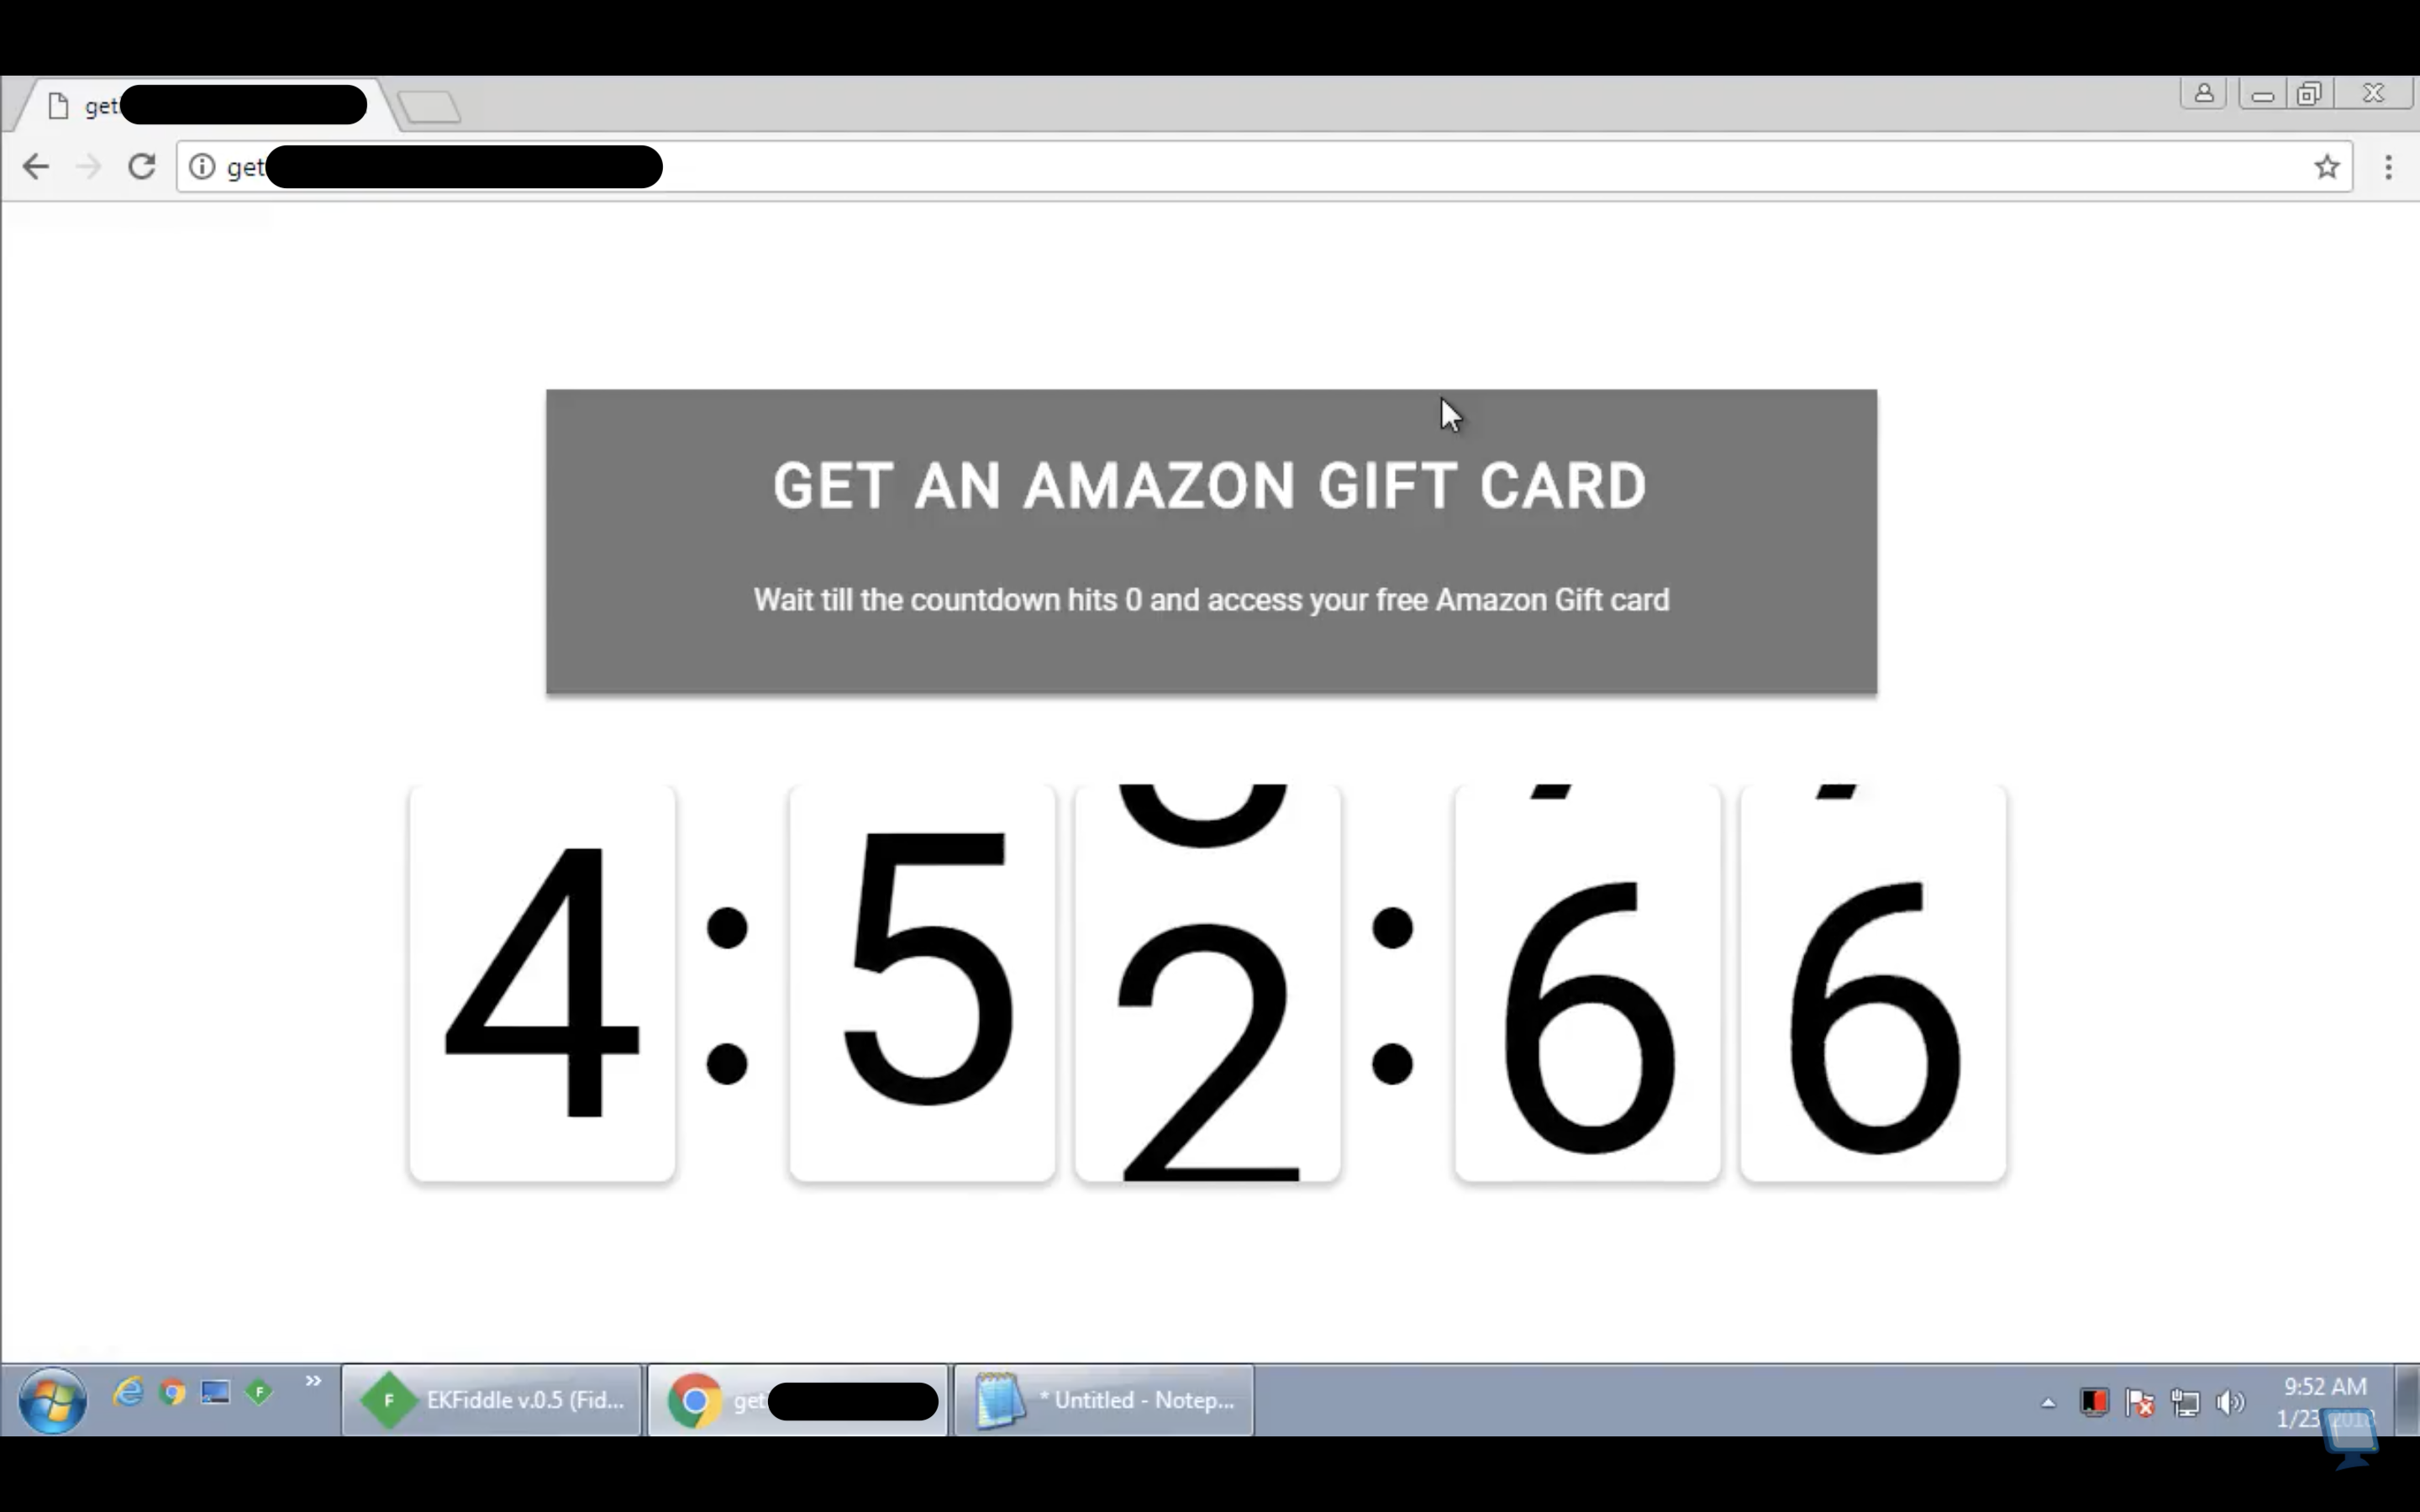 Źródło: https://www.bleepingcomputer.com/news/security/sites-promoting-free-amazon-gift-cards-dont-deliver-what-you-are-expecting/